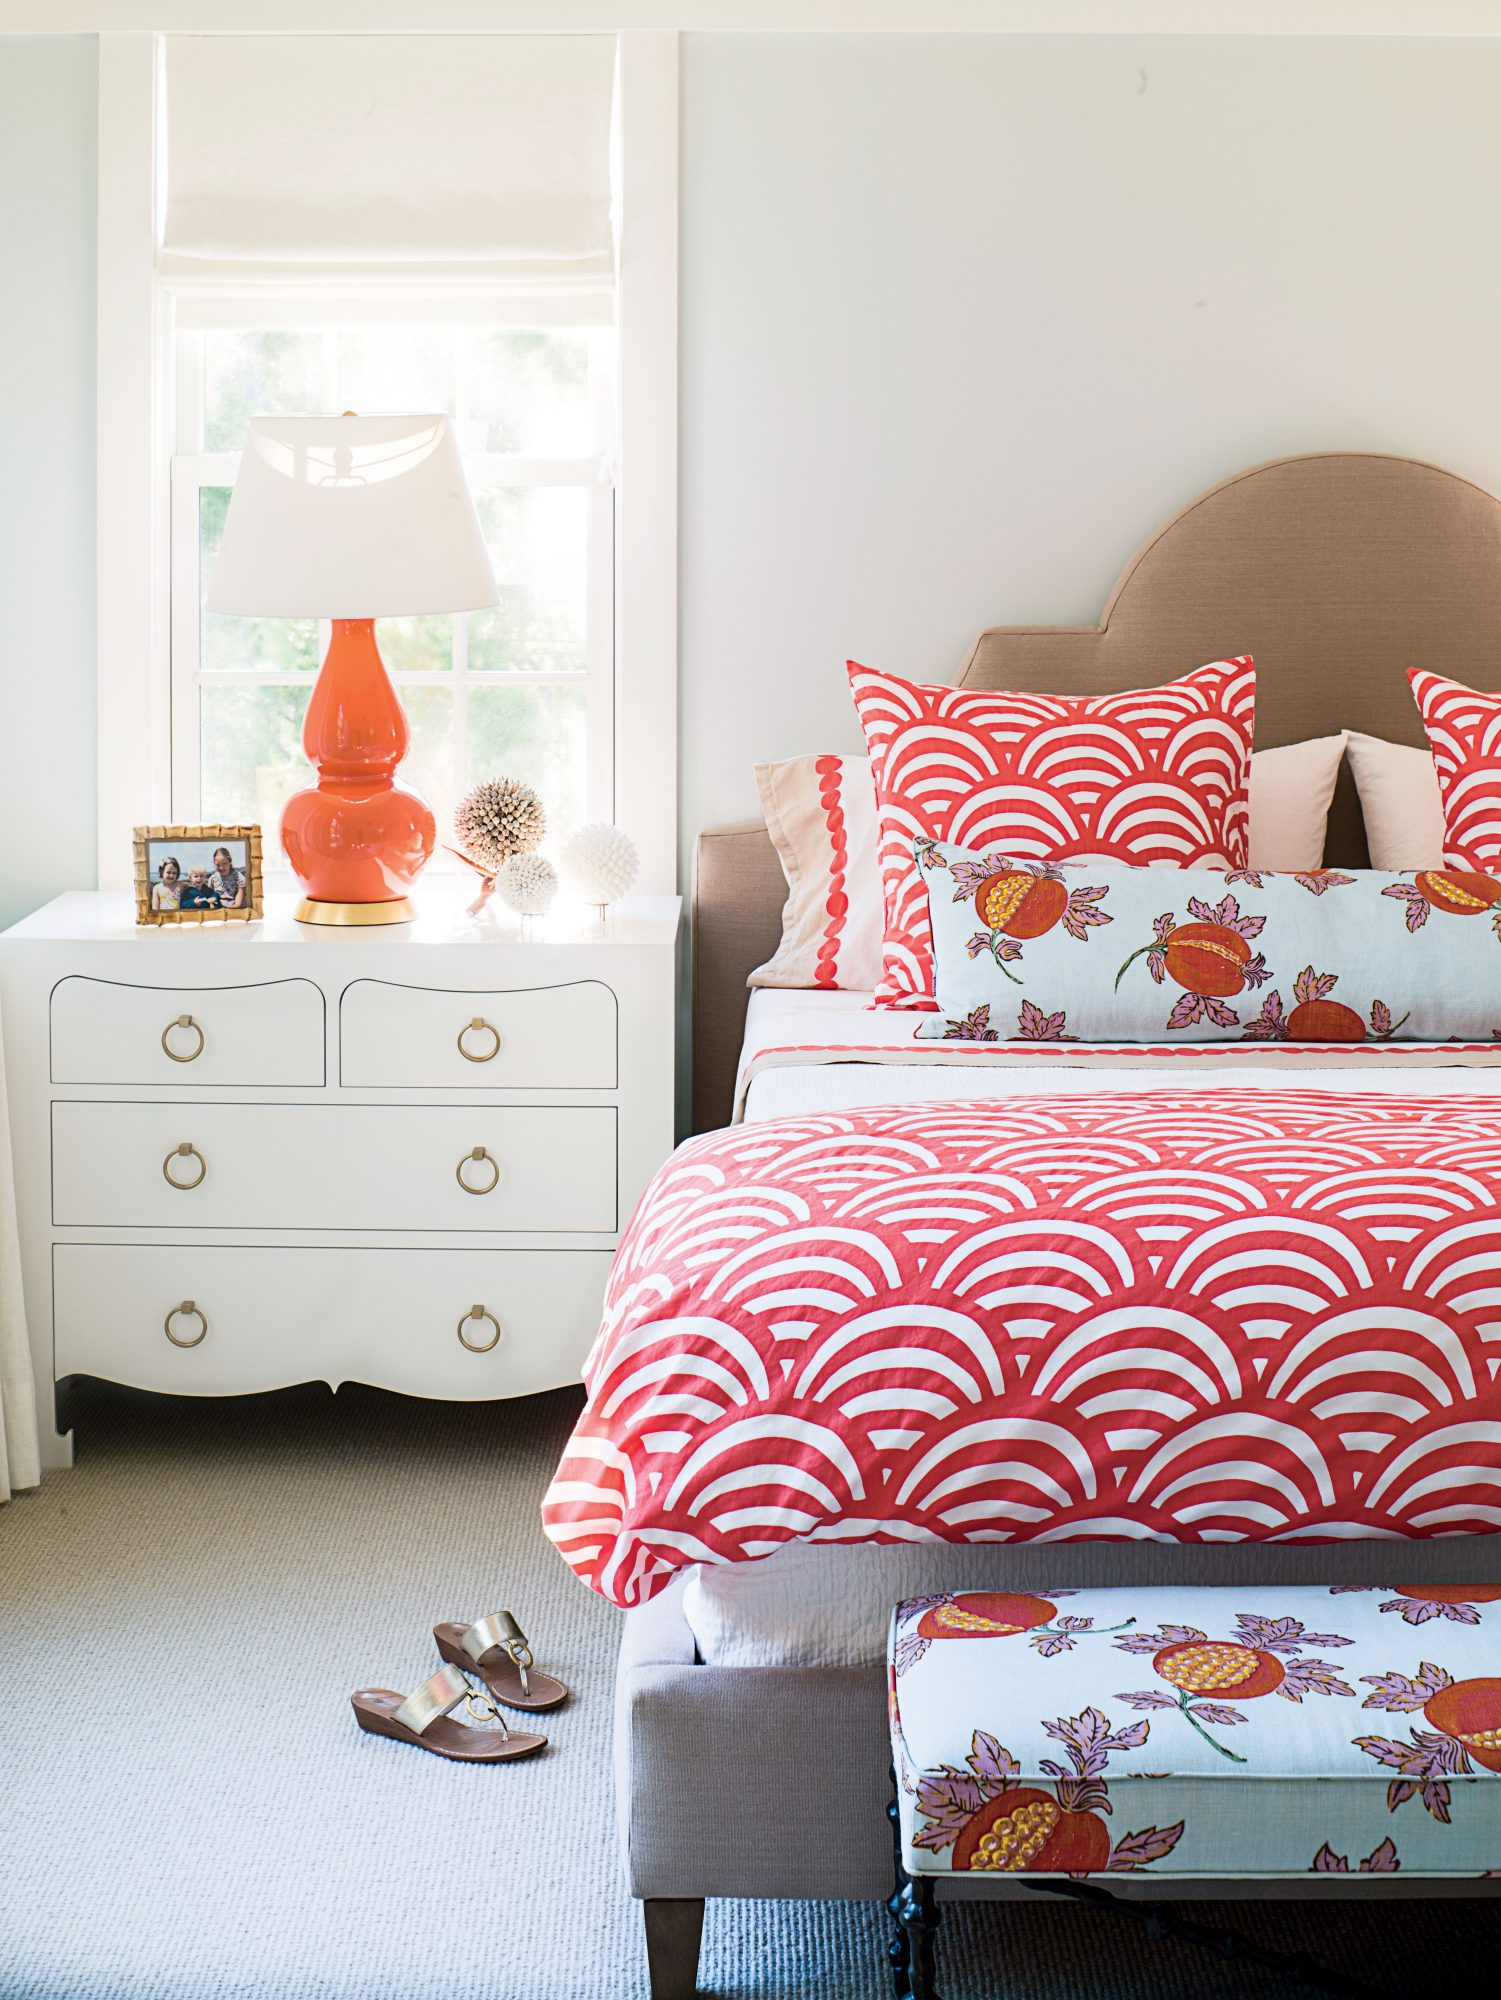 This Rehoboth, Delaware, bedroom is the perfect combination of restful and rejuvenating, thanks to its soothing neutrals, fiery color palette, and ebullient patterns.